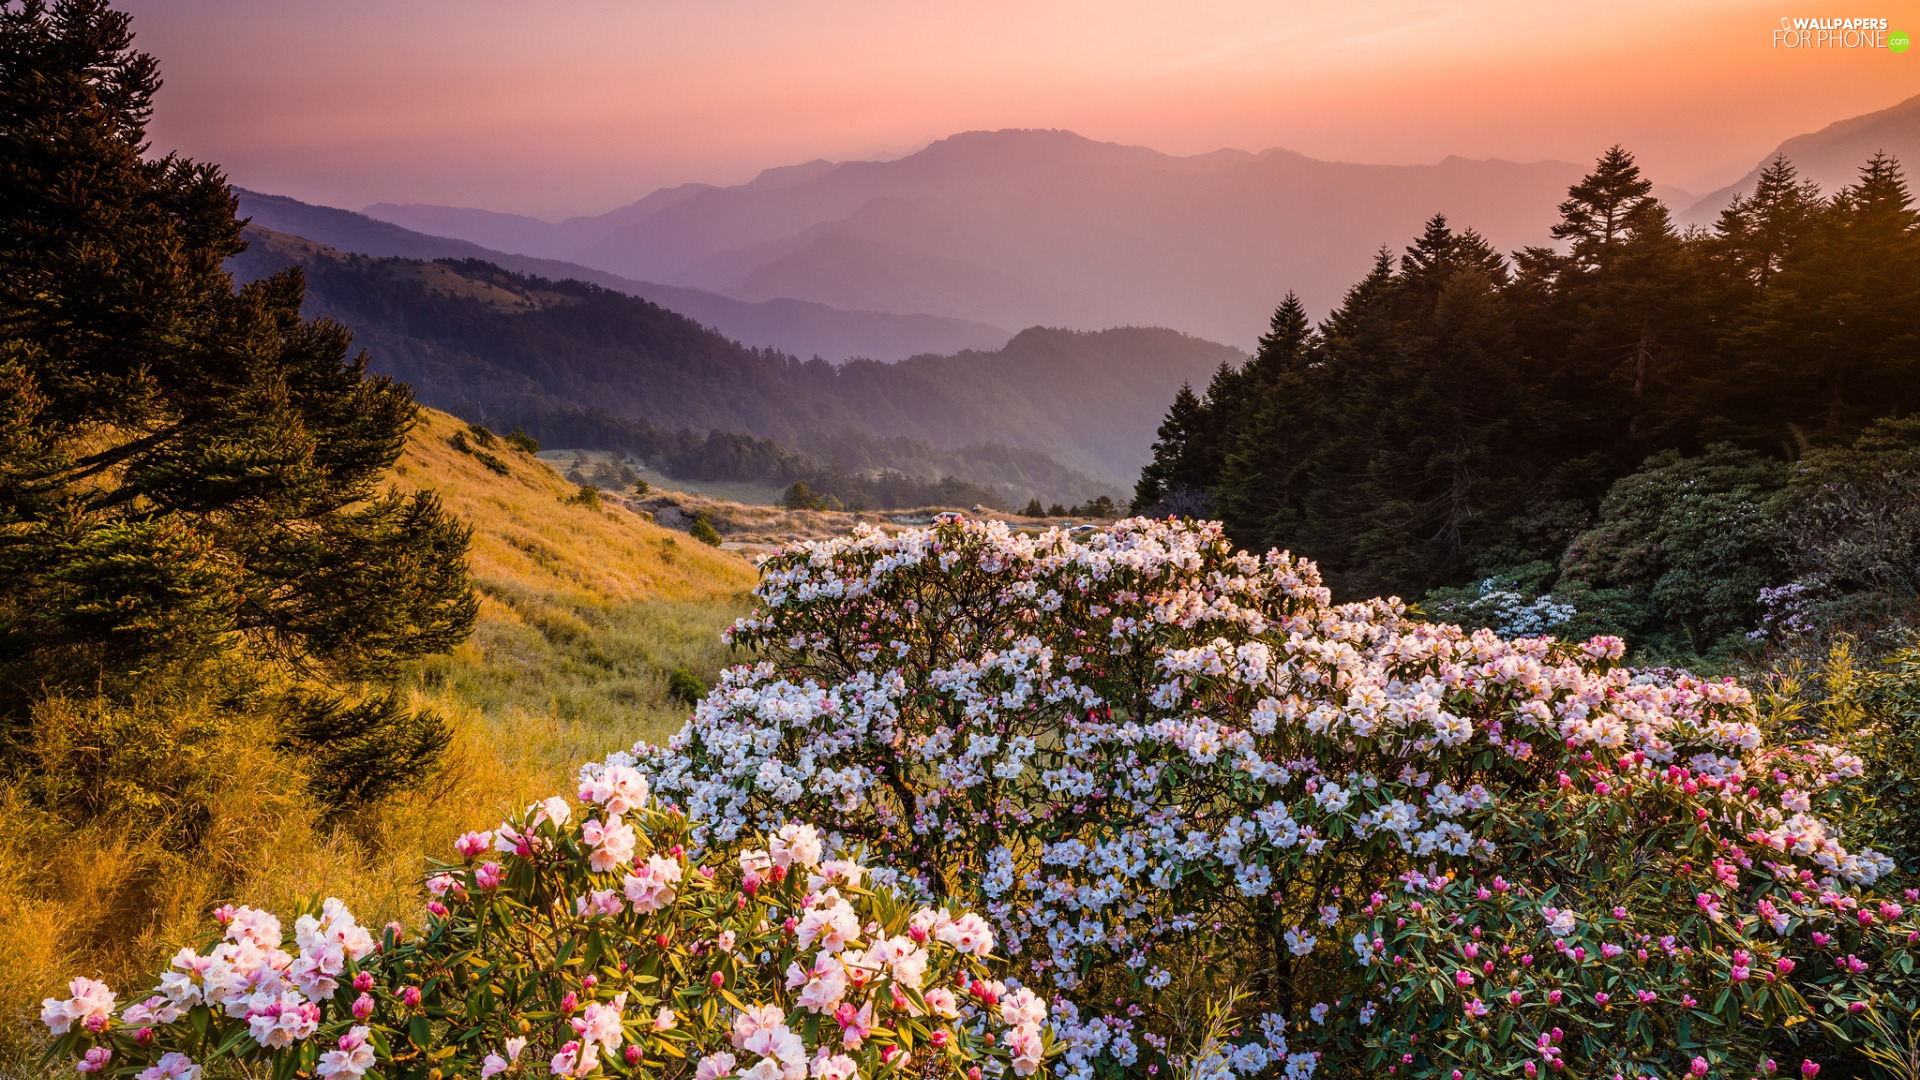 Rhododendrons, Flowers, trees, viewes, Mountains, Rhododendron